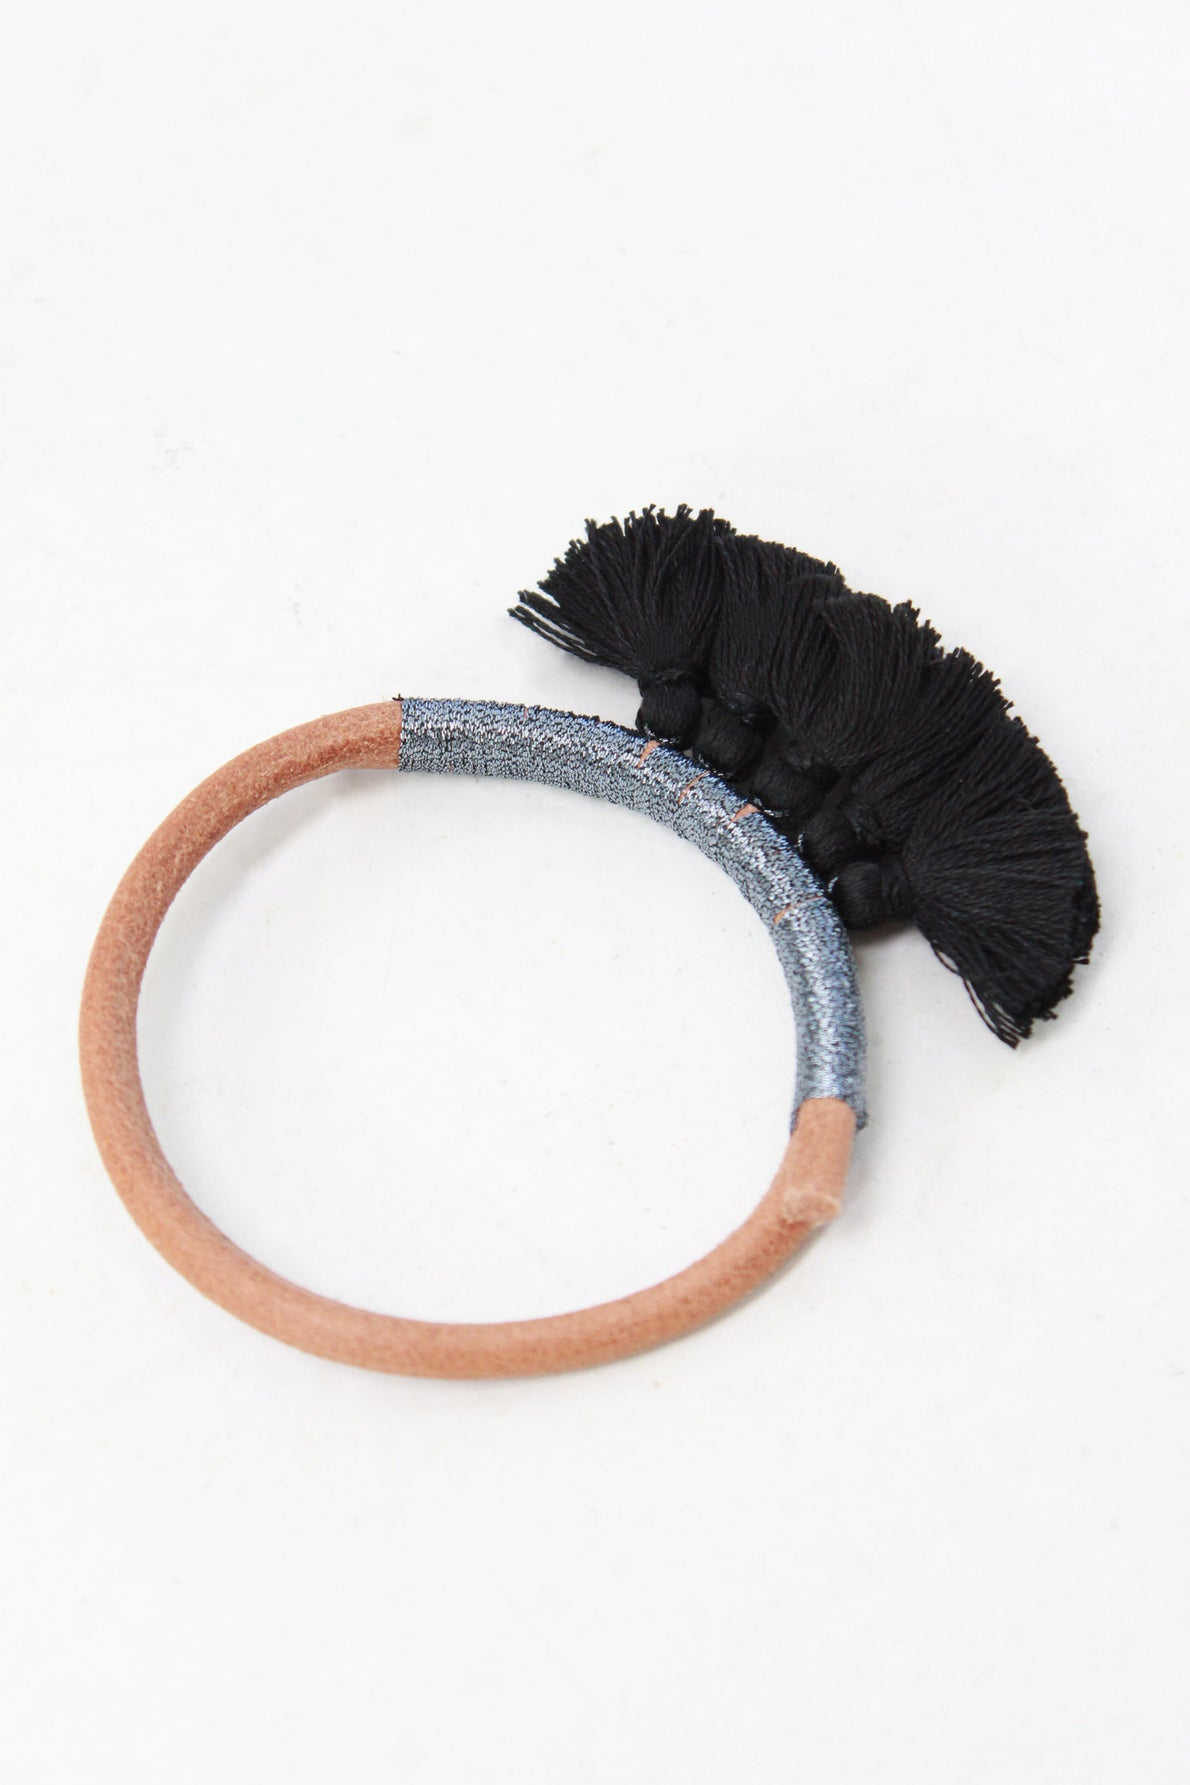 Beklina Tassel Nima Leather Bracelet By Krysos Chandi